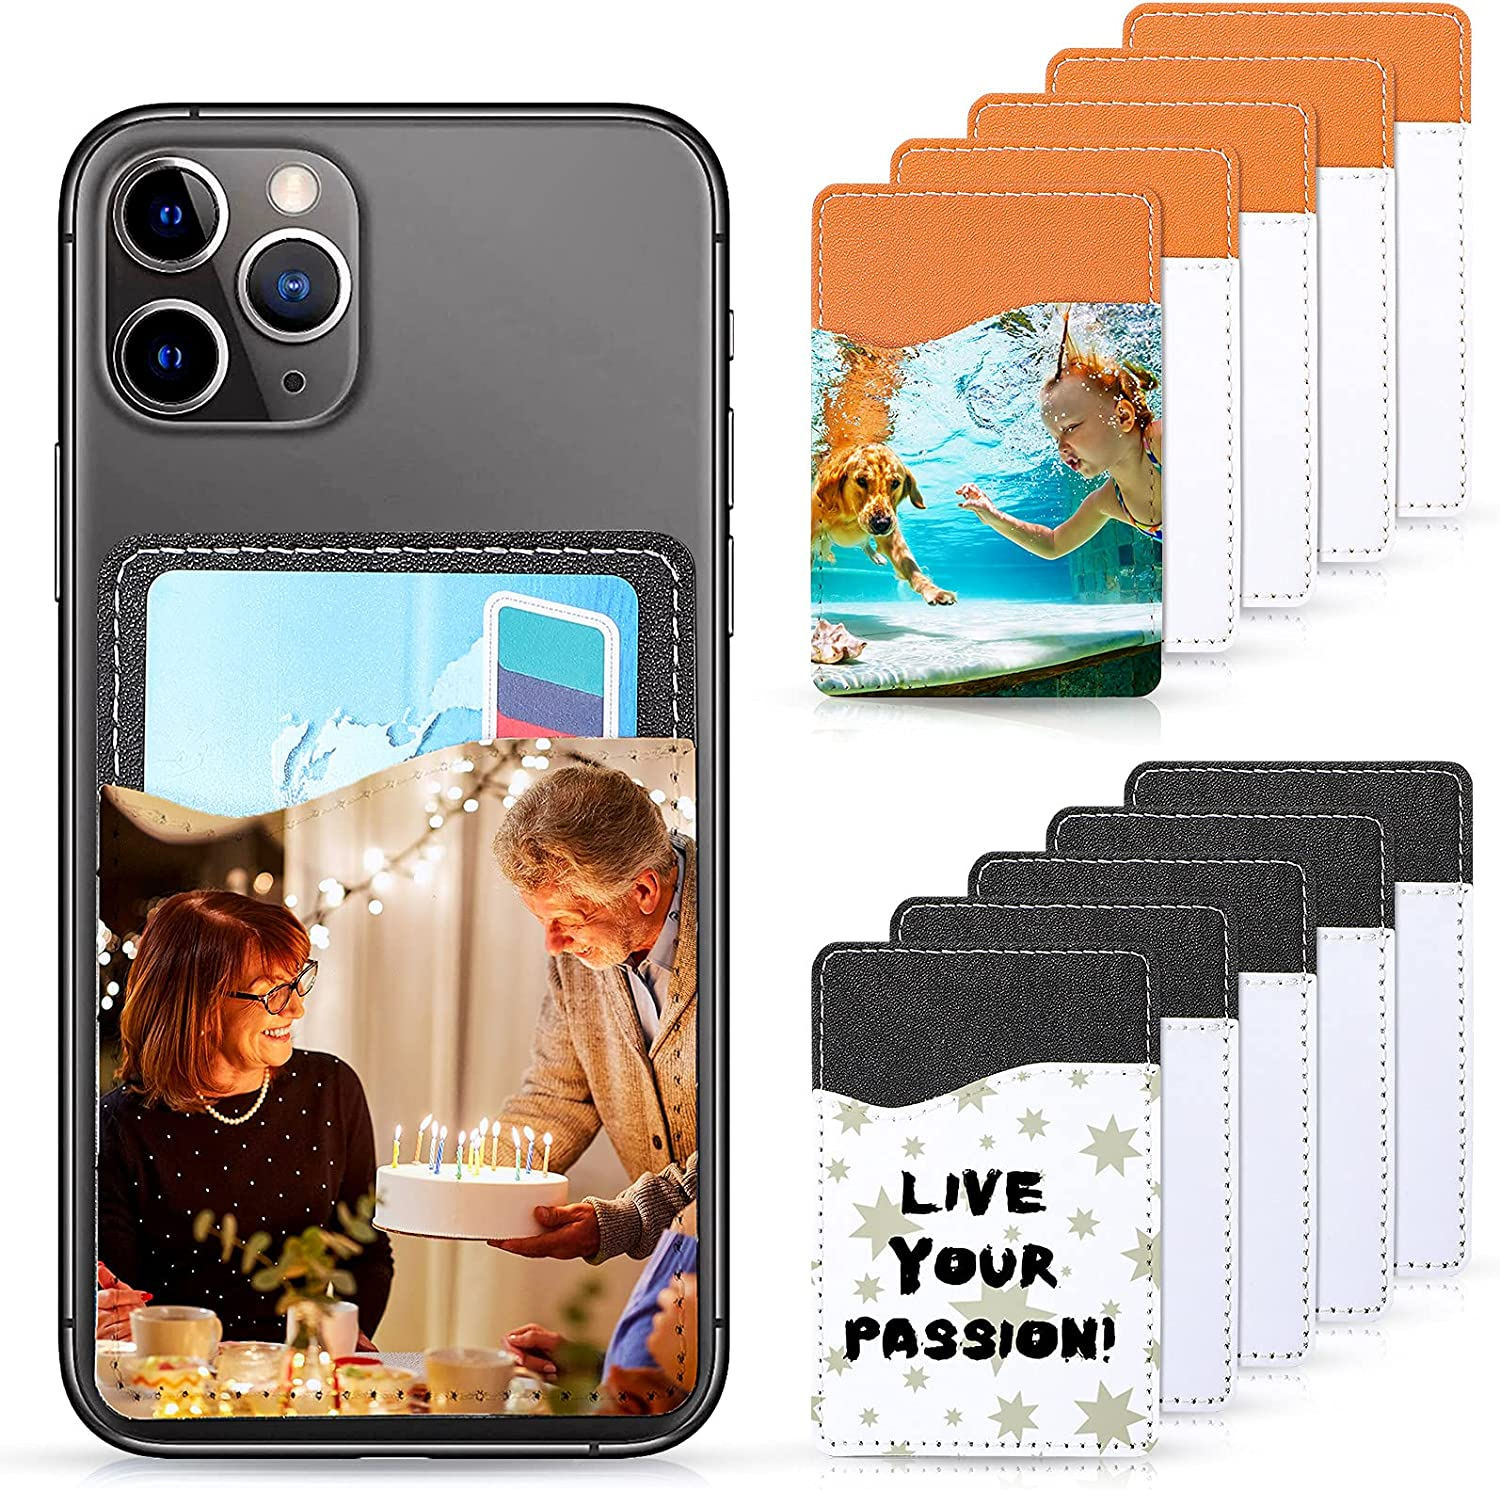 10 Special Campaign Pieces Sublimation Blanks Phone Cell Now on sale Wallet Leather PU